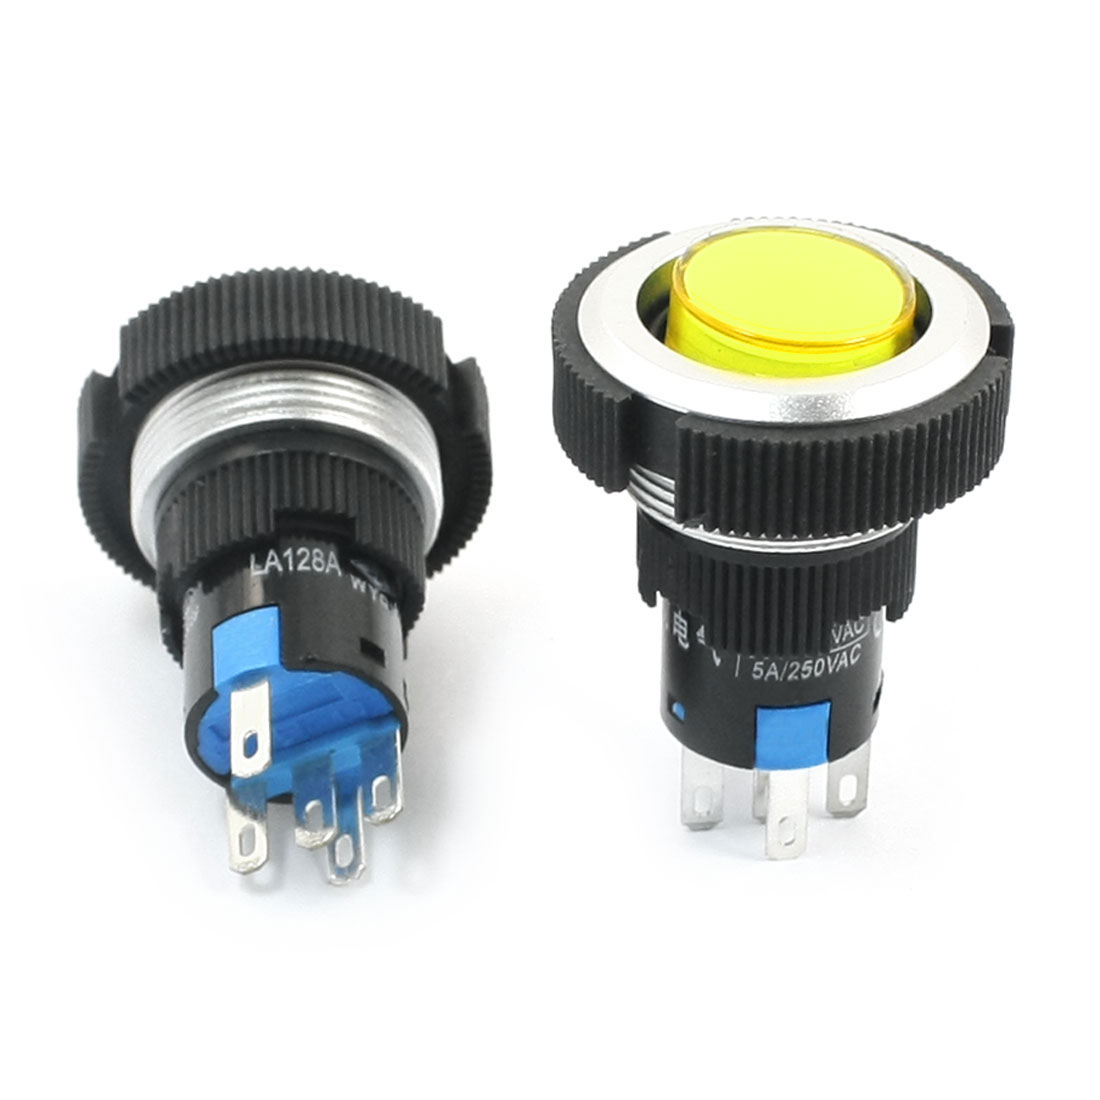 AC 220V 5A 22mm Thread Panel Mount SPDT 5-Pin 1NO 1NC Momentary Control Yellow Pilot Lamp Push Button Switch 2 Pcs